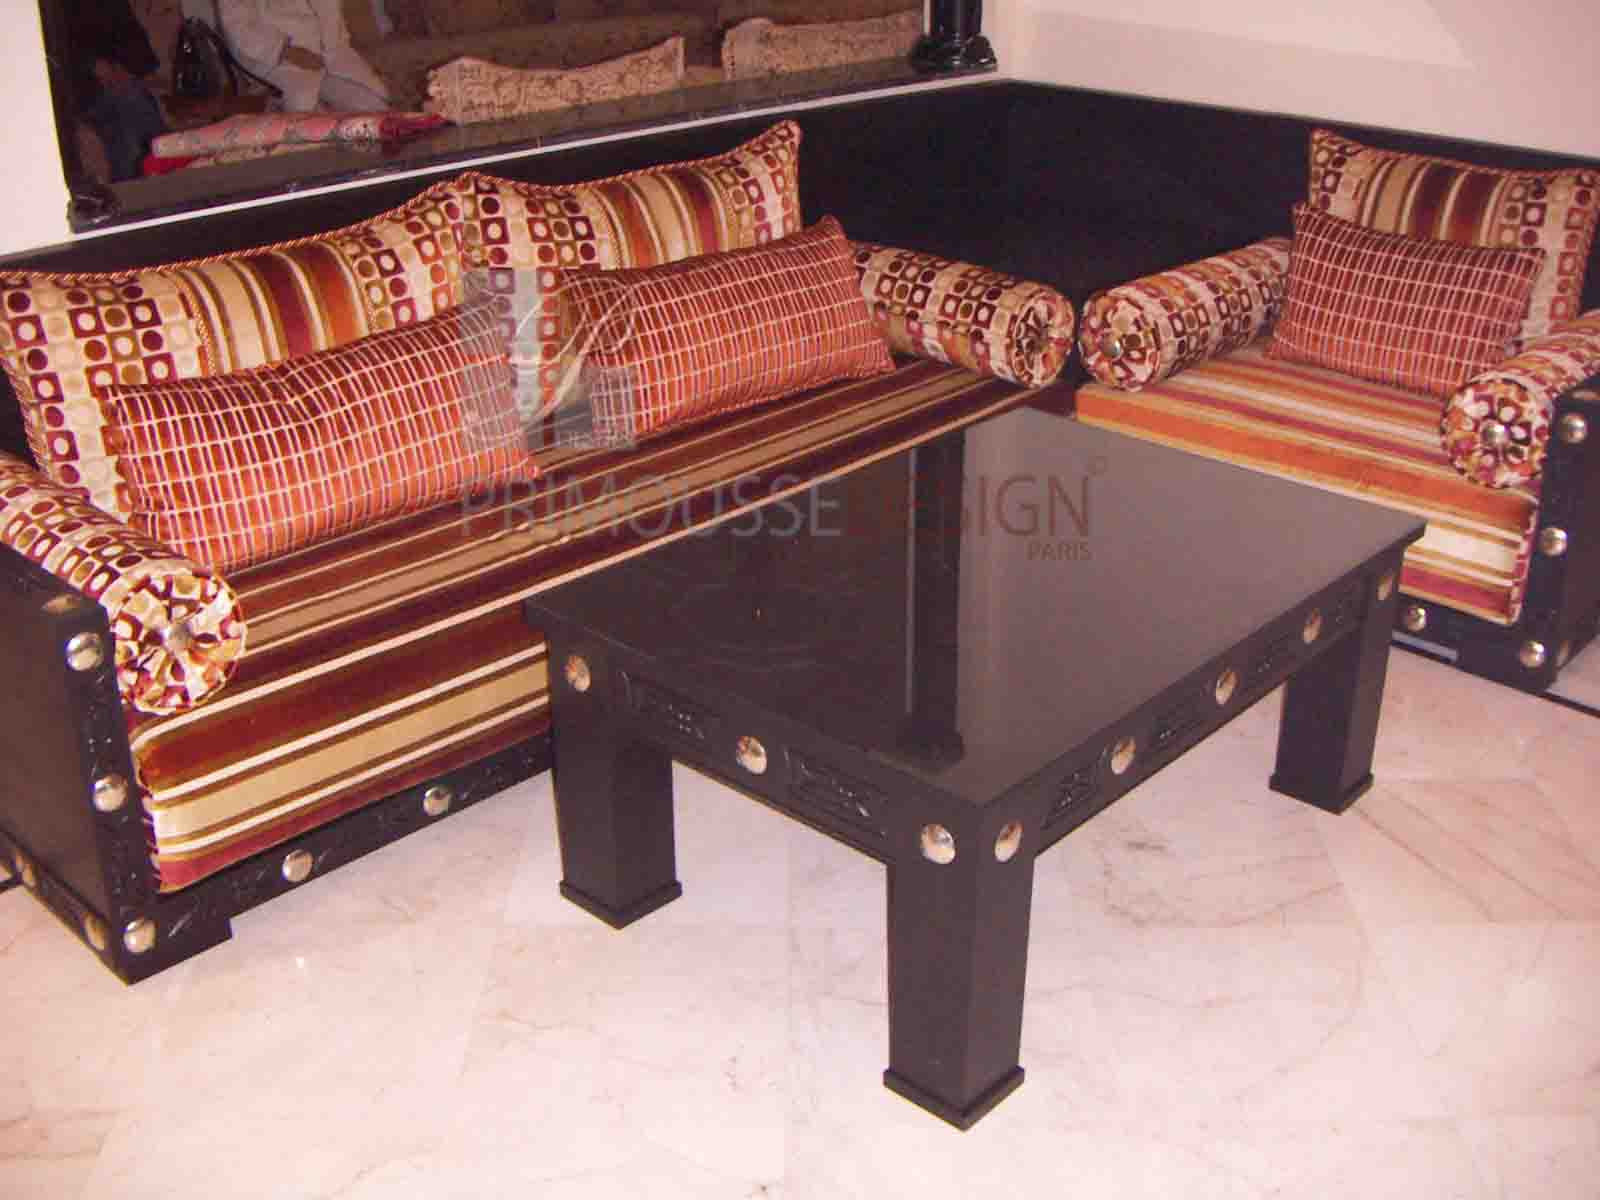 Title Salon Marocain Design Picture to Pin on Pinterest